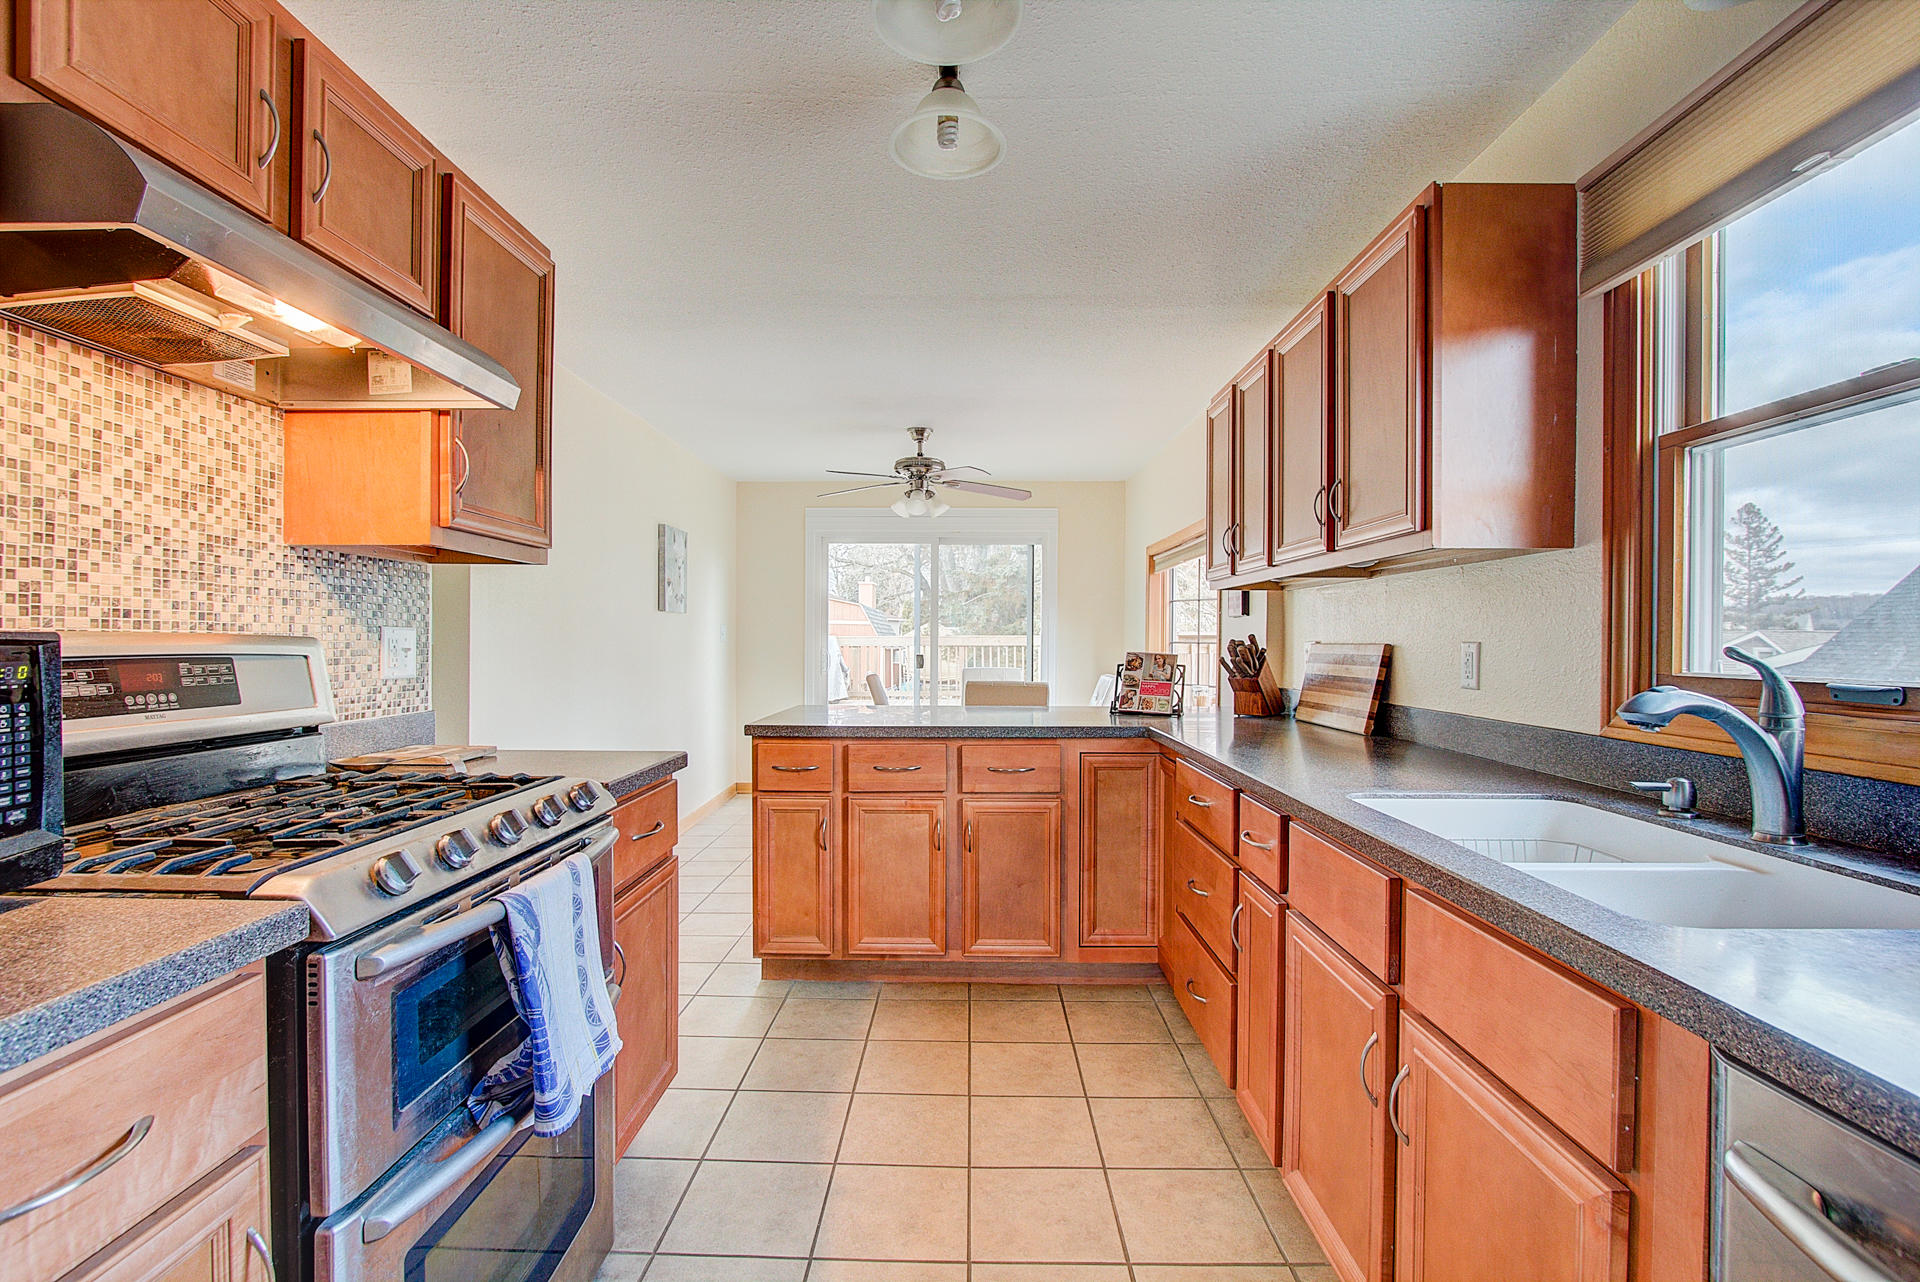 1525 3rd St, Delafield, Wisconsin 53018, 3 Bedrooms Bedrooms, 5 Rooms Rooms,1 BathroomBathrooms,Single-Family,For Sale,3rd St,1615418